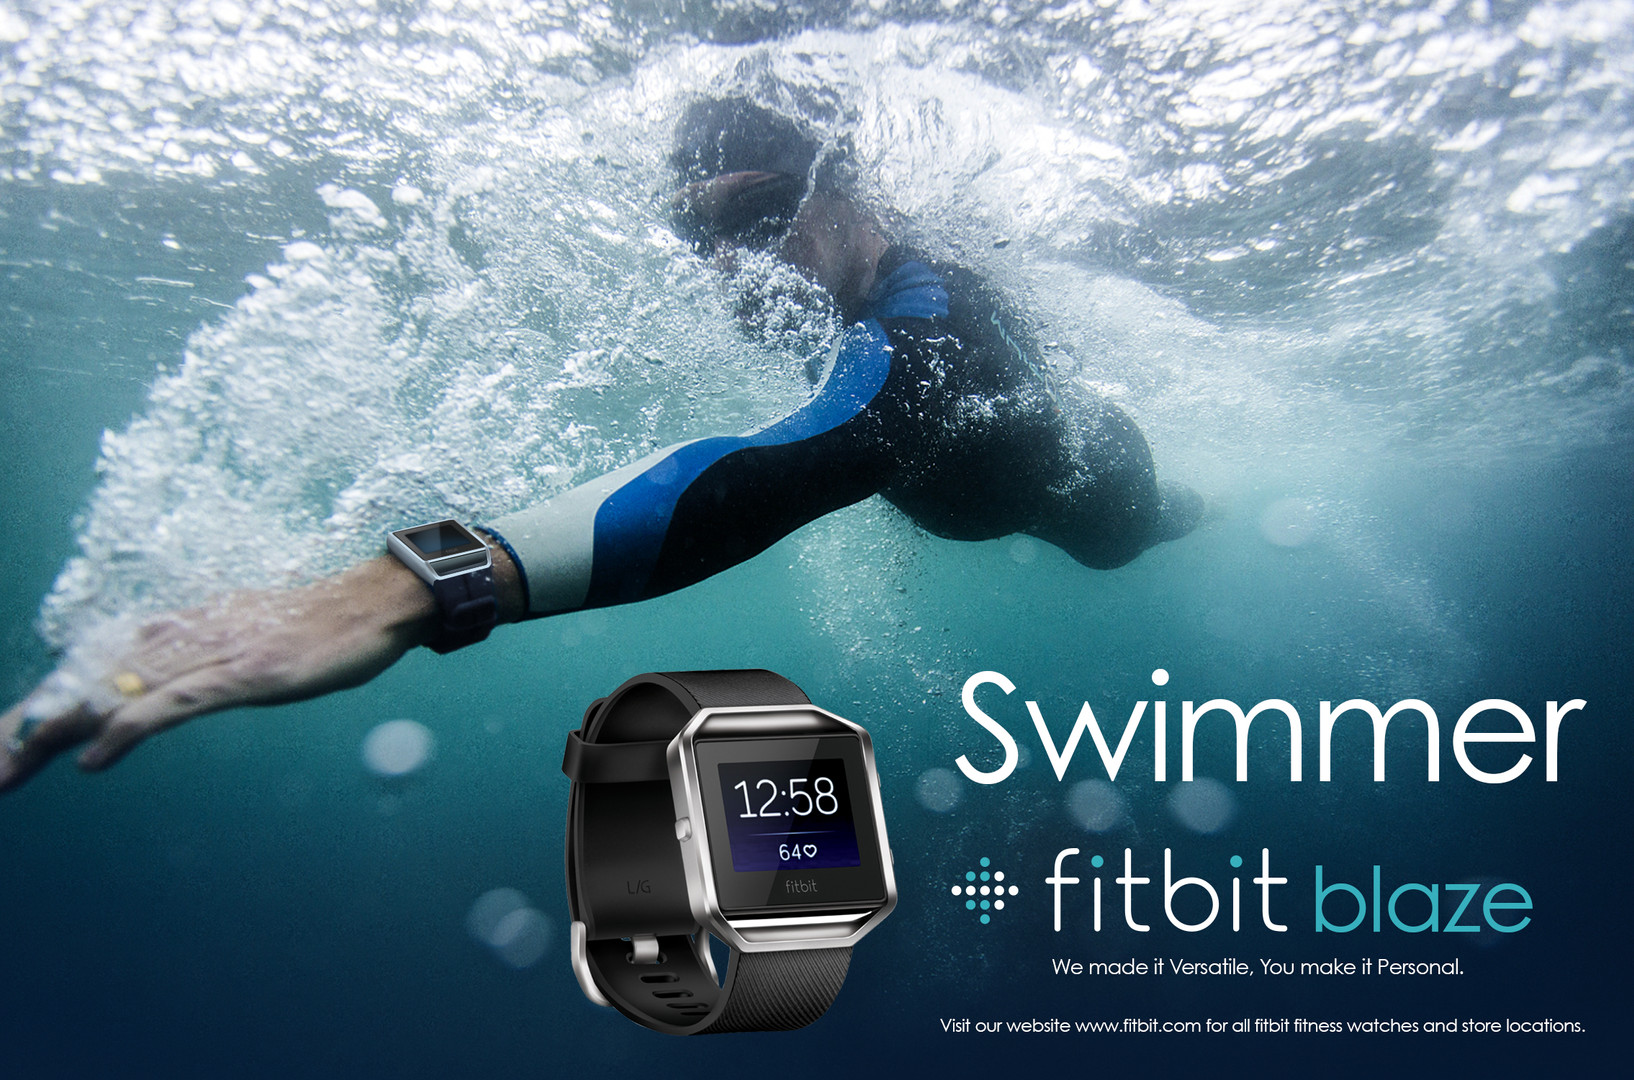 Fitbit Watch Swimmer ad.jpg